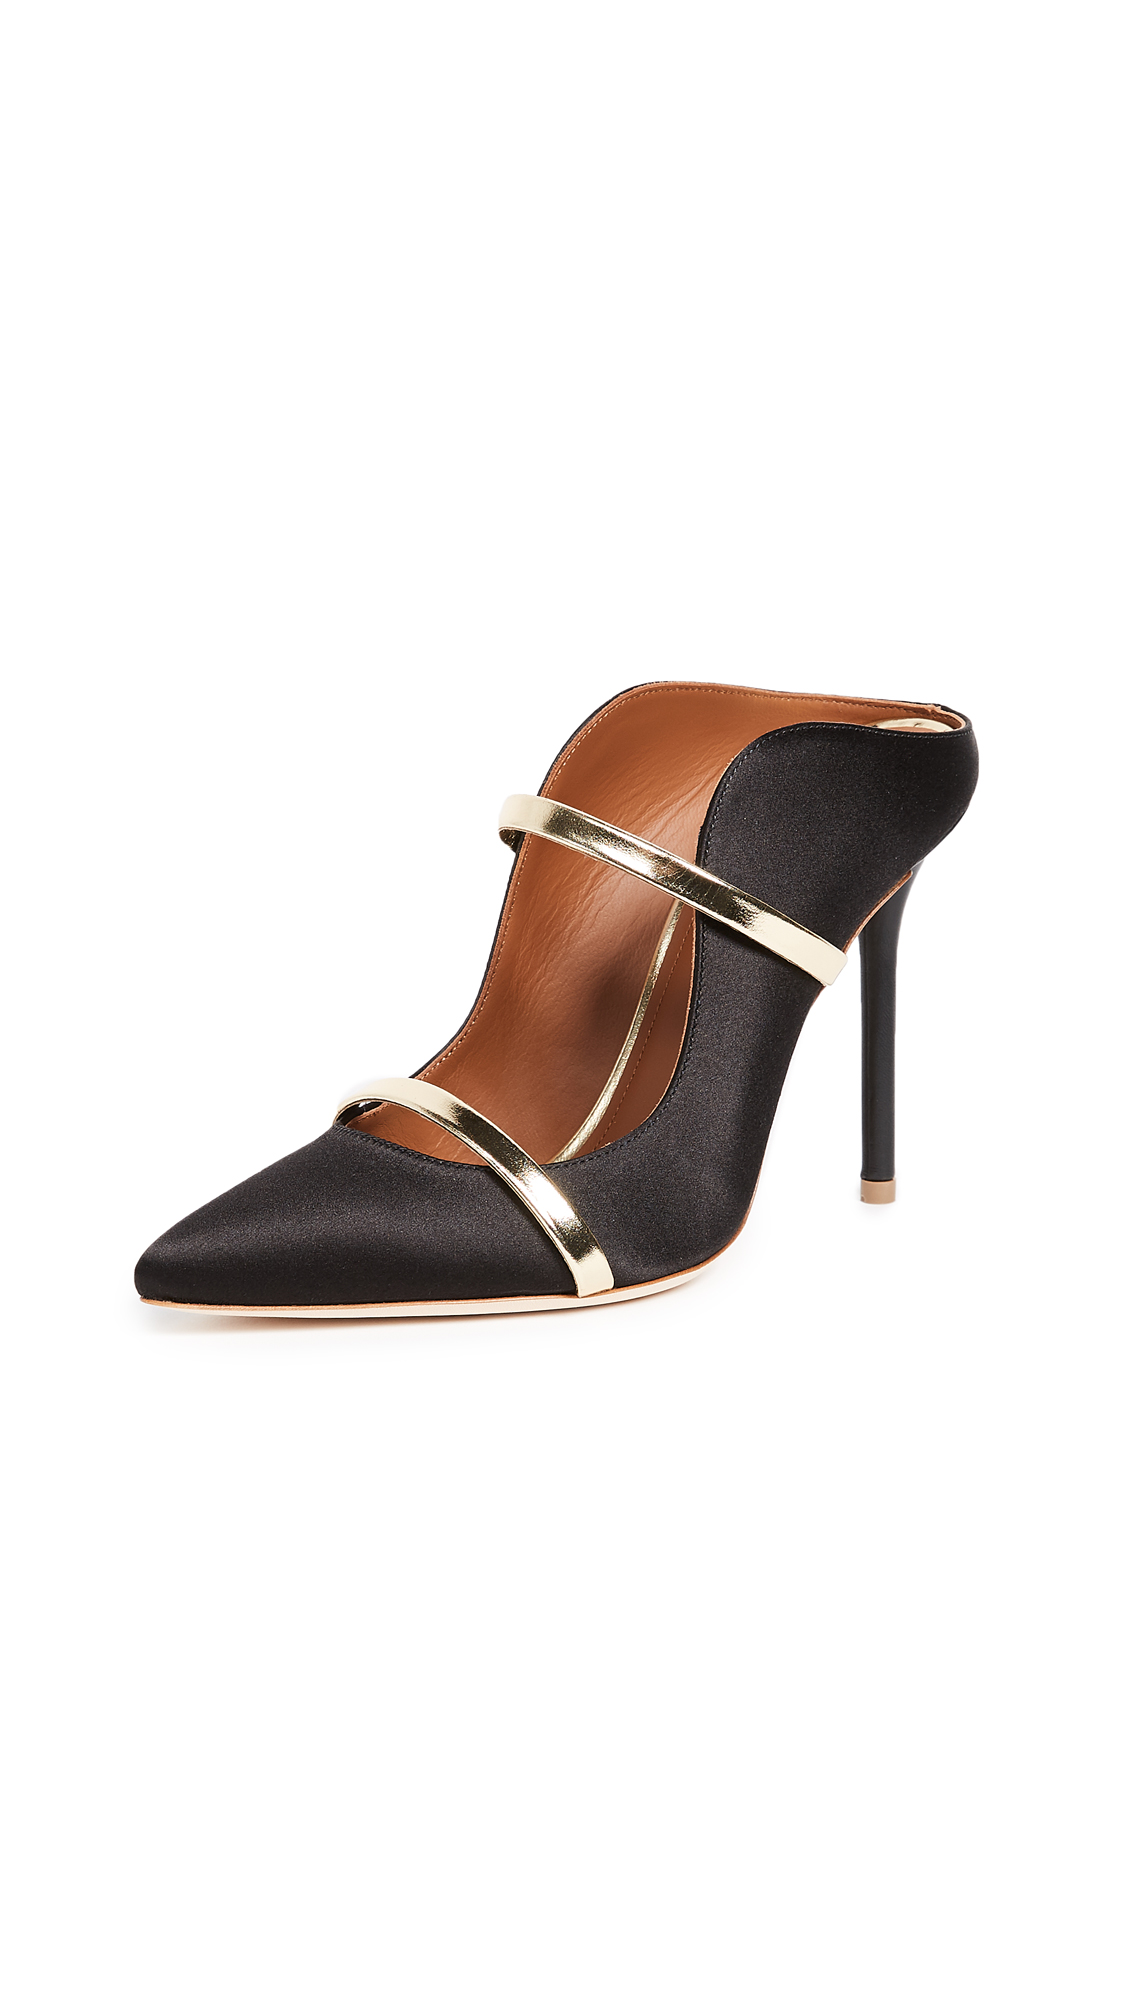 Malone Souliers by Roy Luwolt Maureen Mule Pumps - Black/Gold